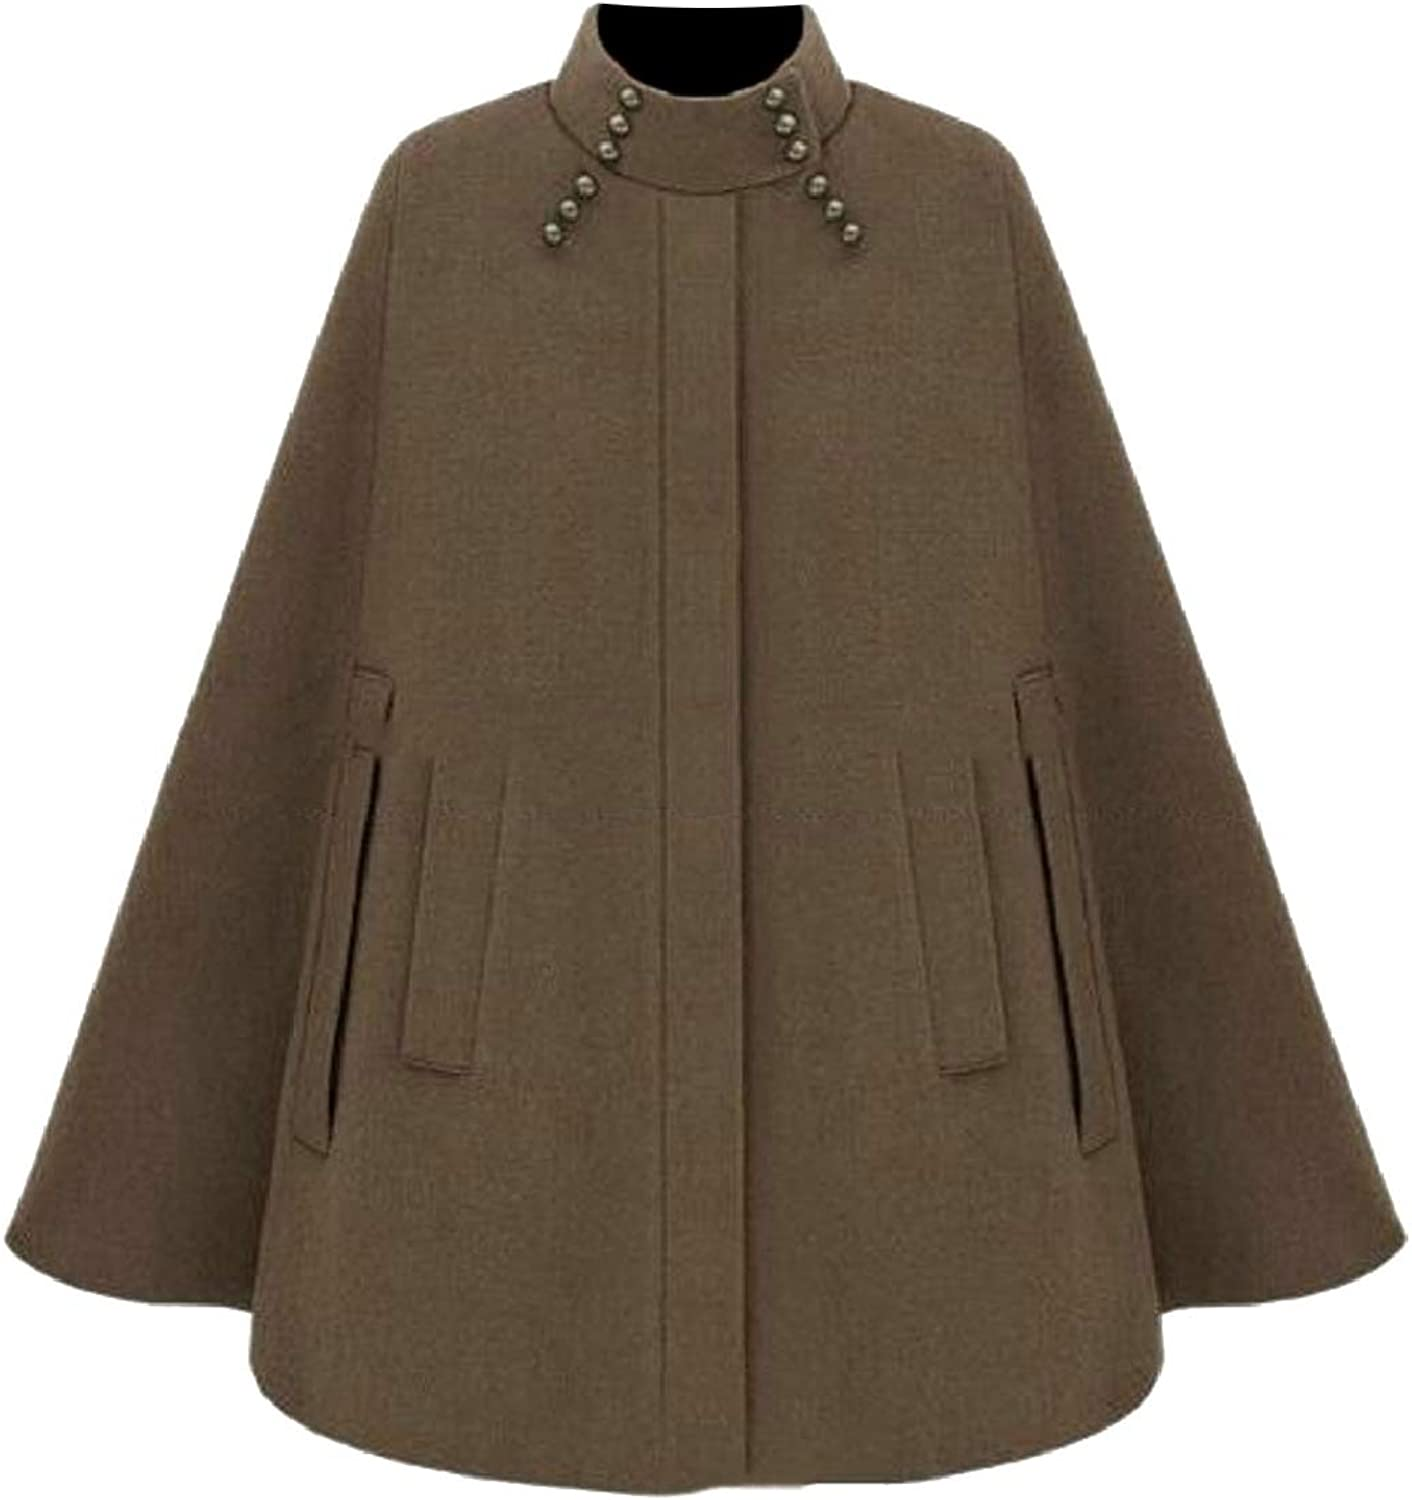 PujinggeCA Woman Stand Collar Cape Cloak Jacket Poncho Trench Coat with Pocket